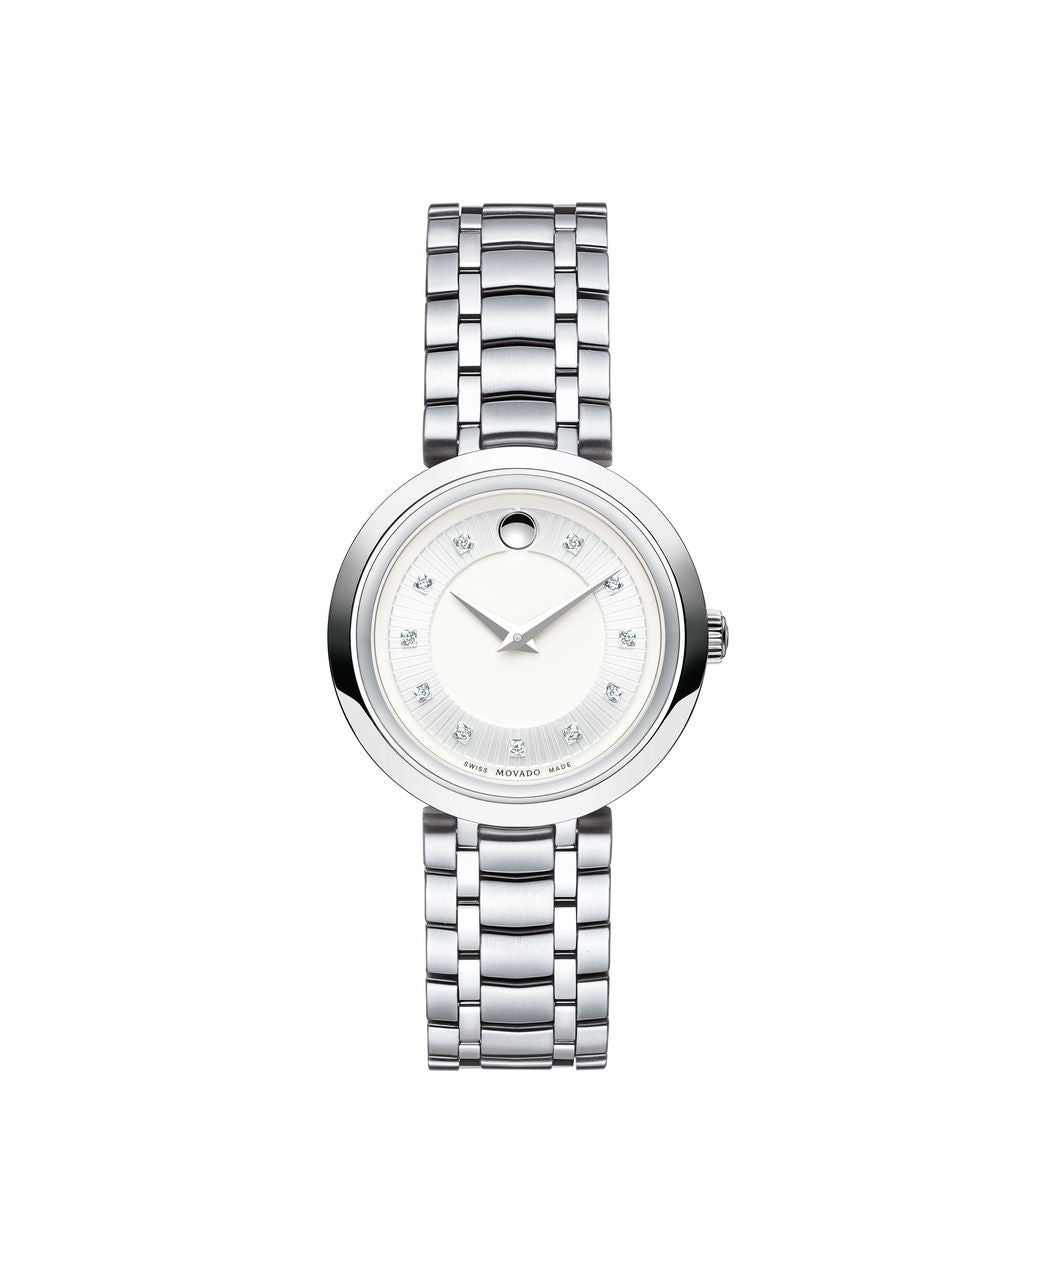 Ladies Movado 1881 Quartz - Stainless Steel with Diamond Markers